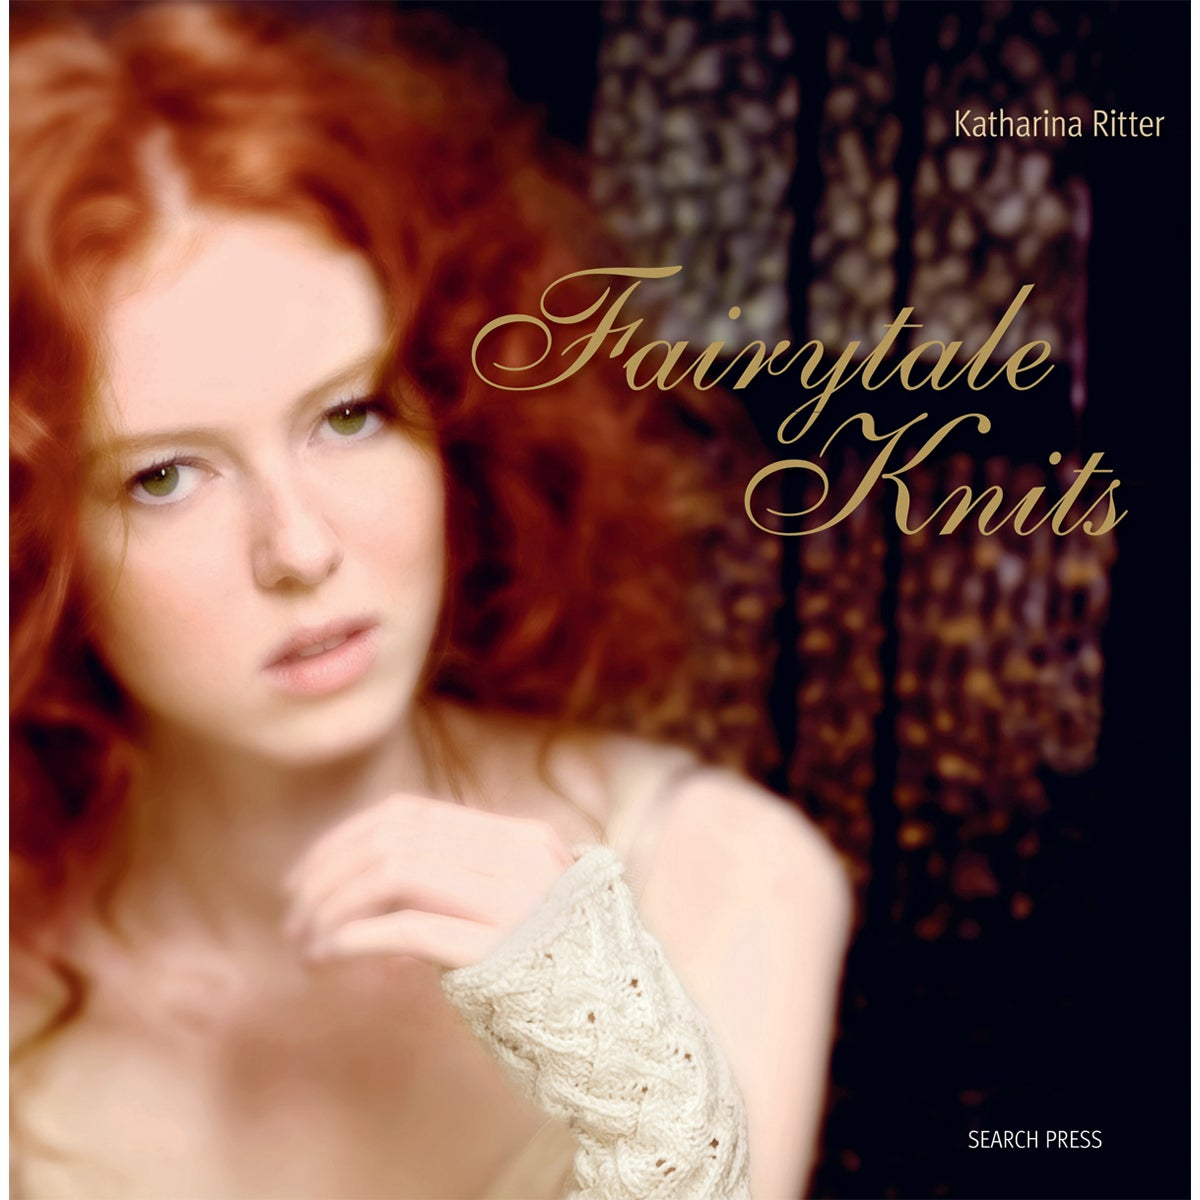 Search Press Books-Fairytale Knits